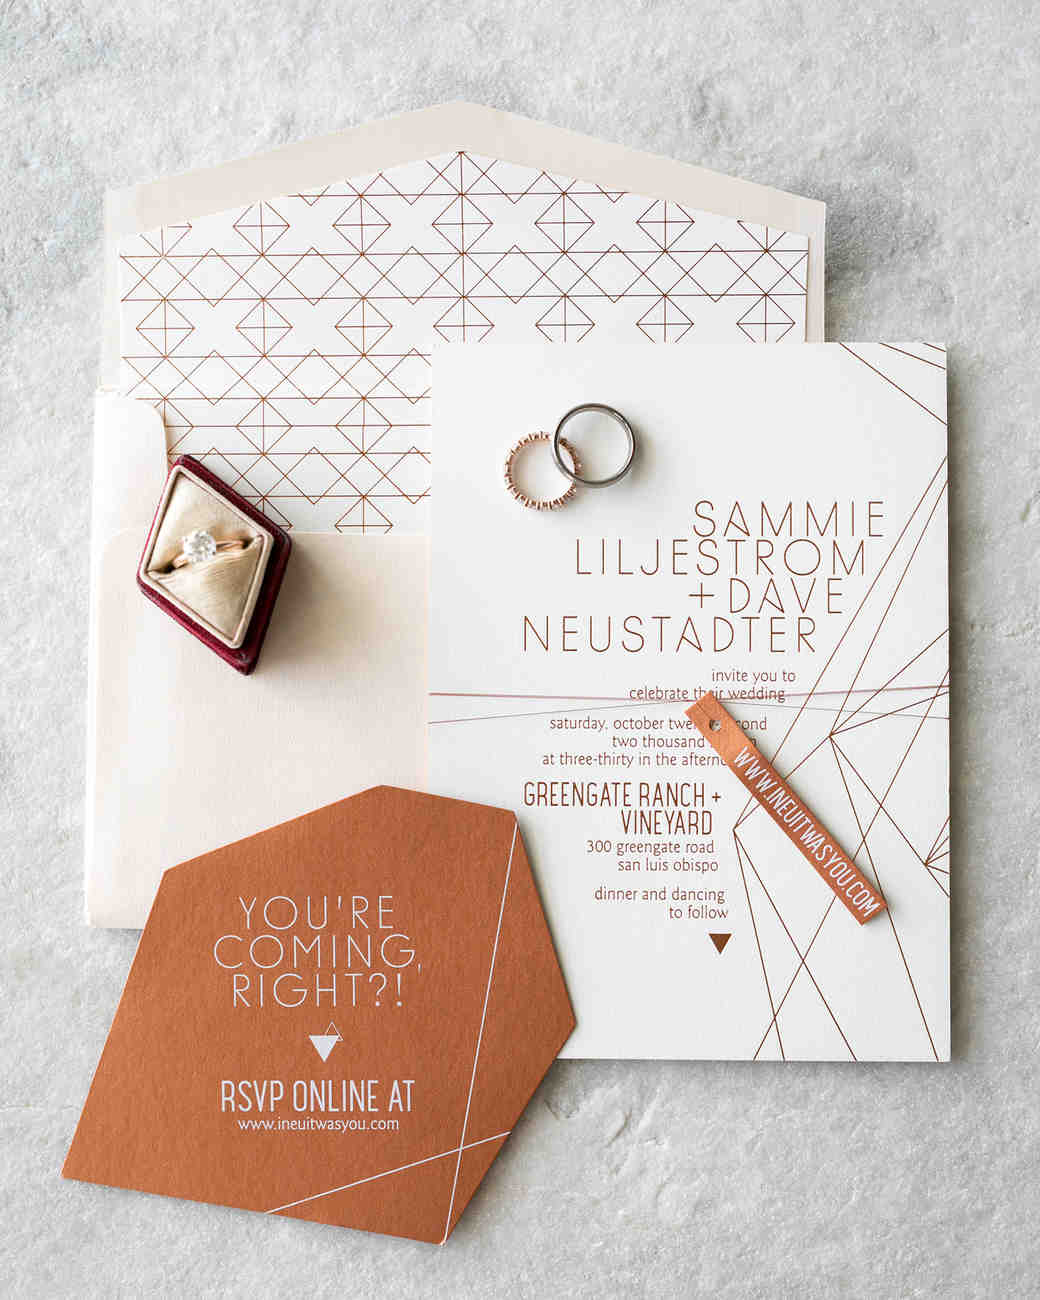 When Do I Send Out Wedding Invitations: 28 Geometric Wedding Invitations With An Edge